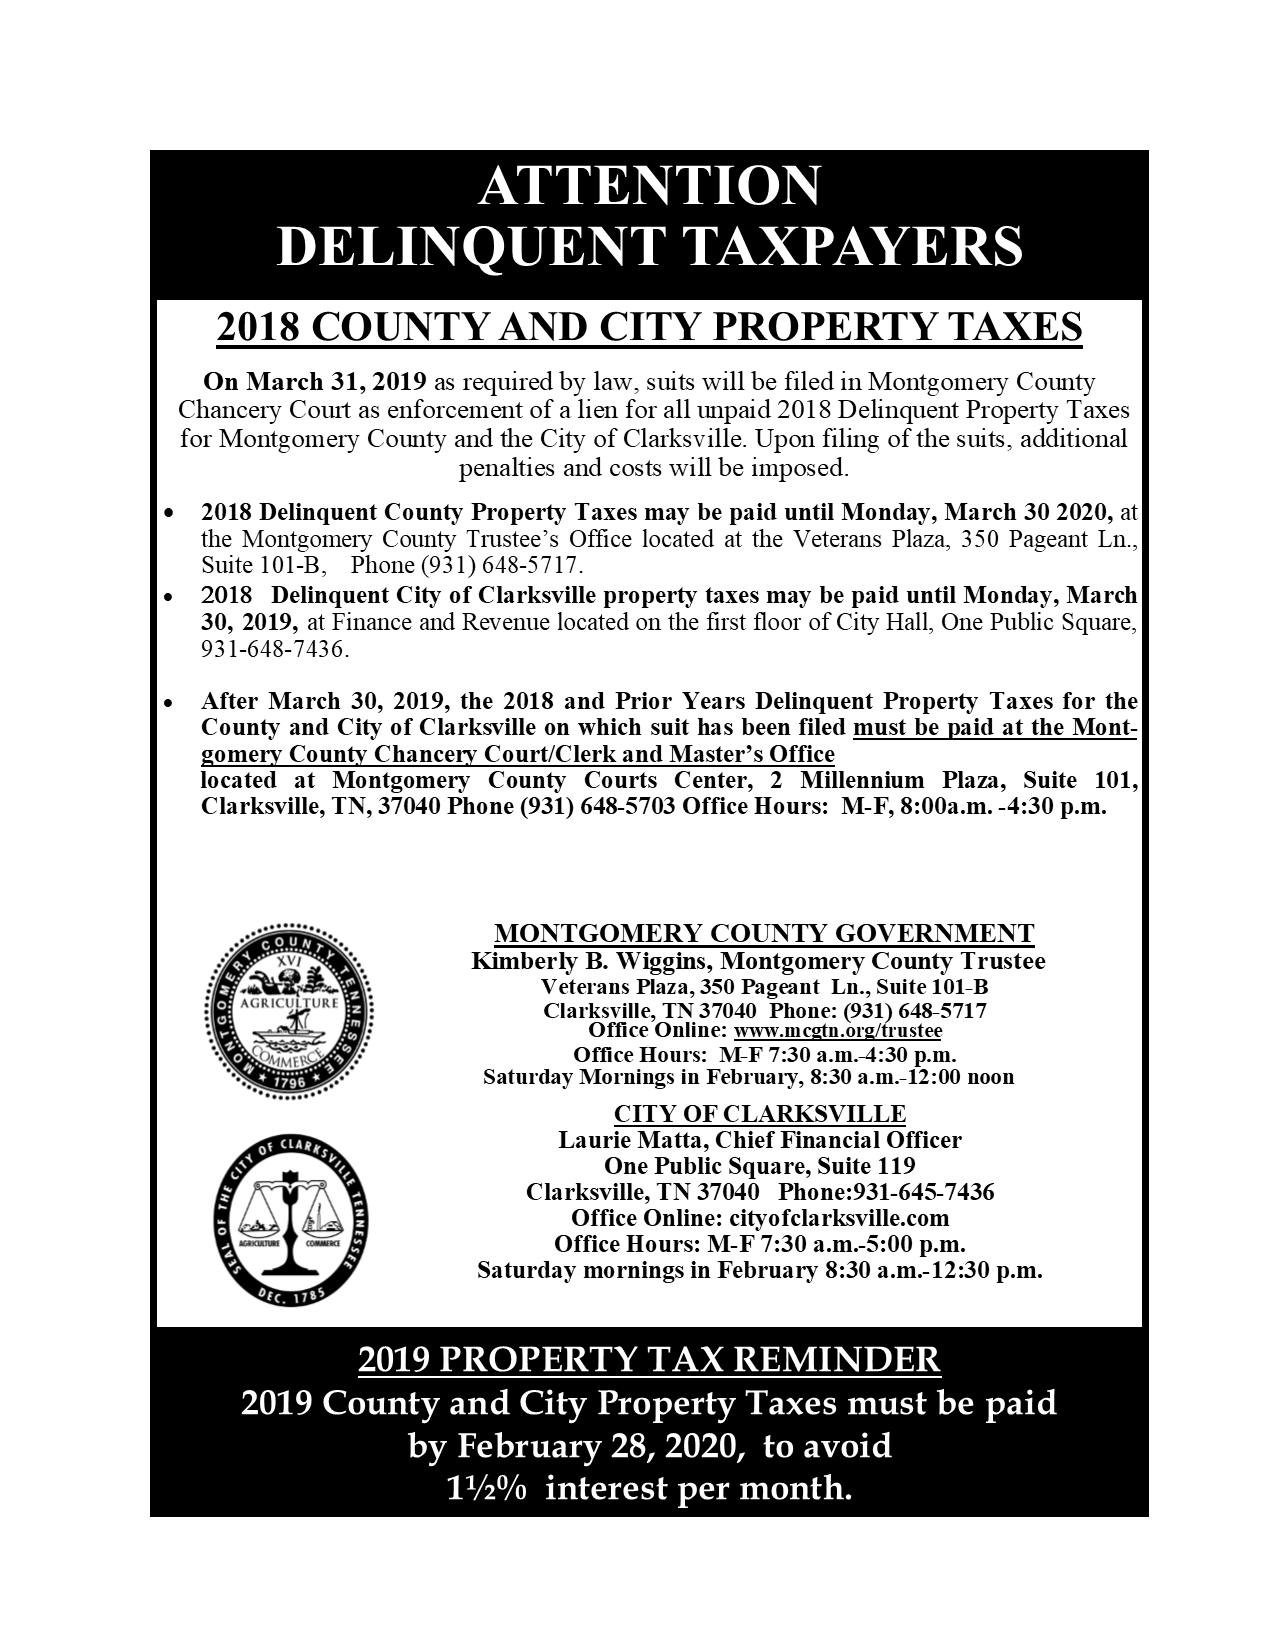 Attention Delinquent Taxpayers